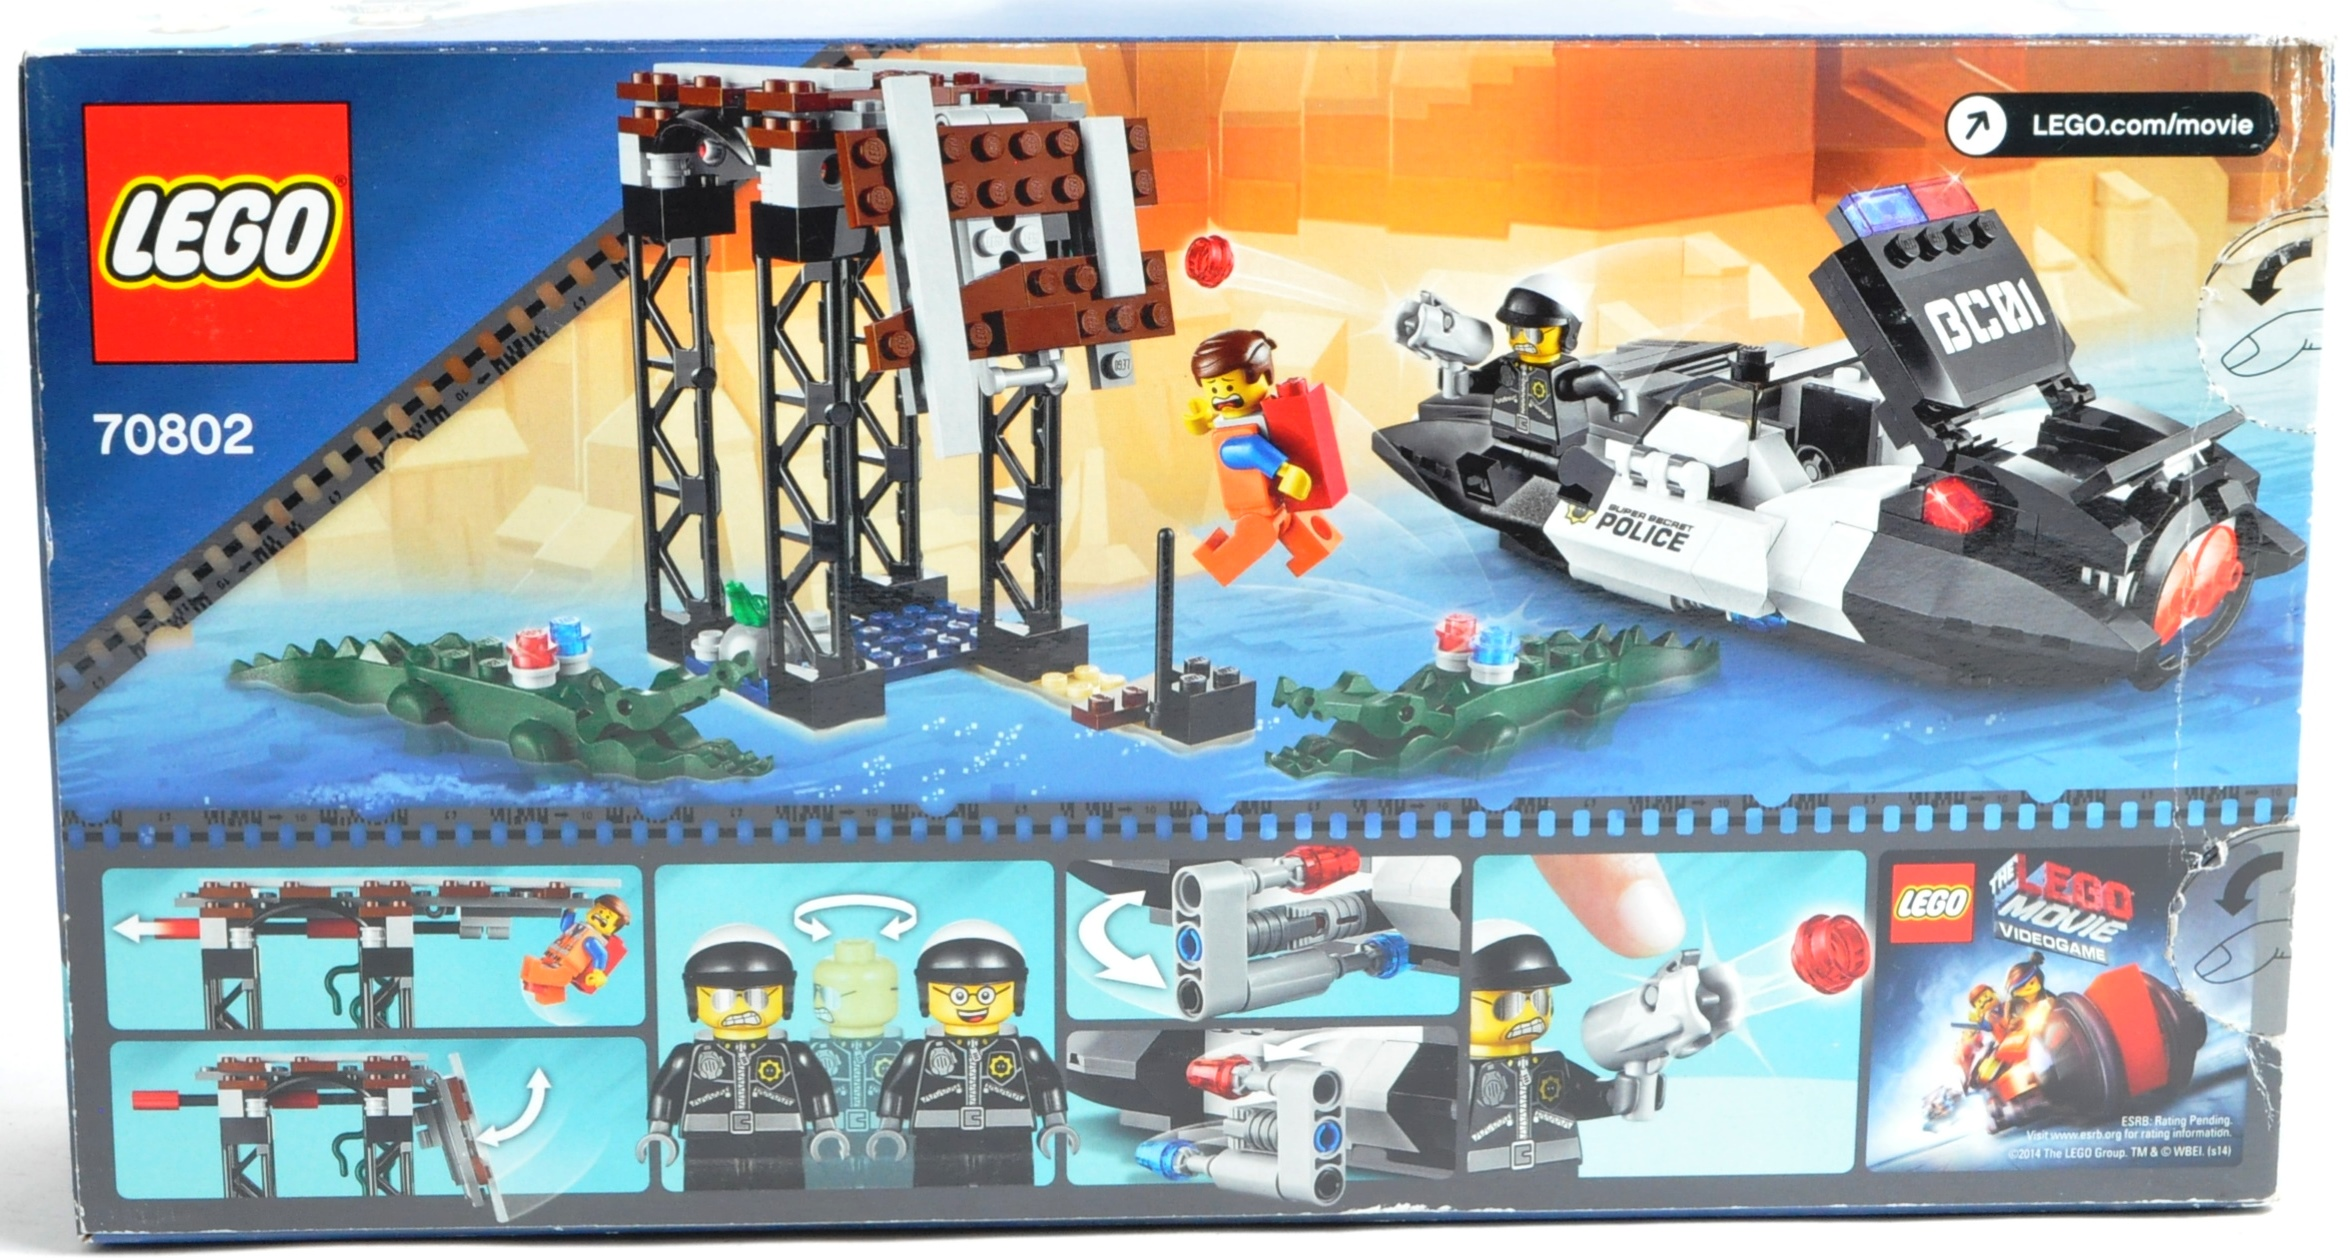 LEGO SETS - THE LEGO MOVIE - COLLECTION OF X7 LEGO MOVIE SETS - Image 12 of 17